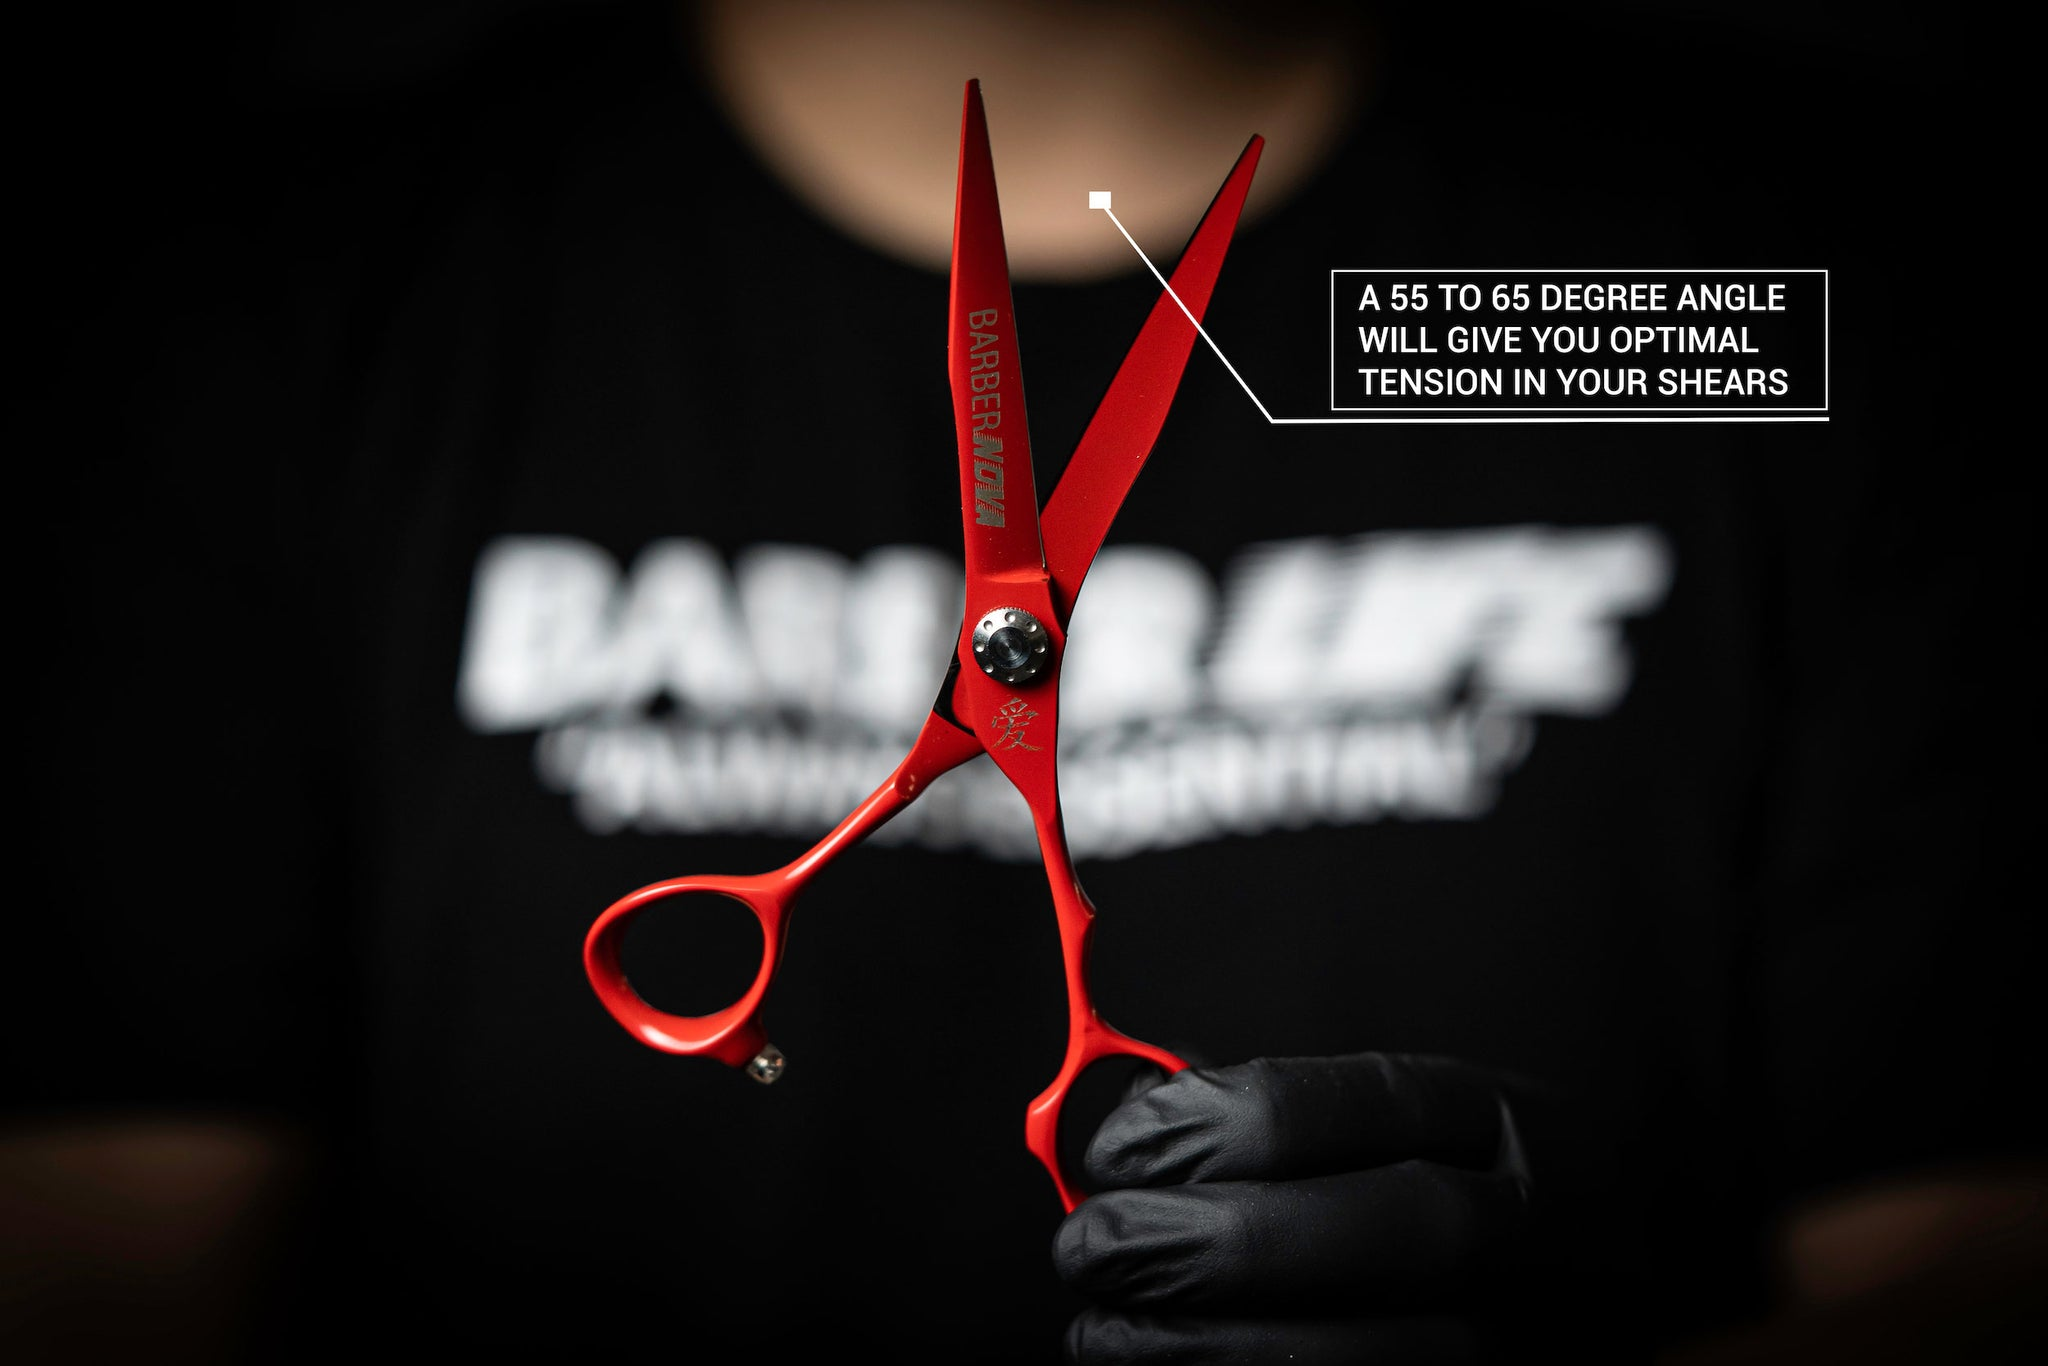 how to get the perfect shear tension, calibrating your shears, optimal shear tension